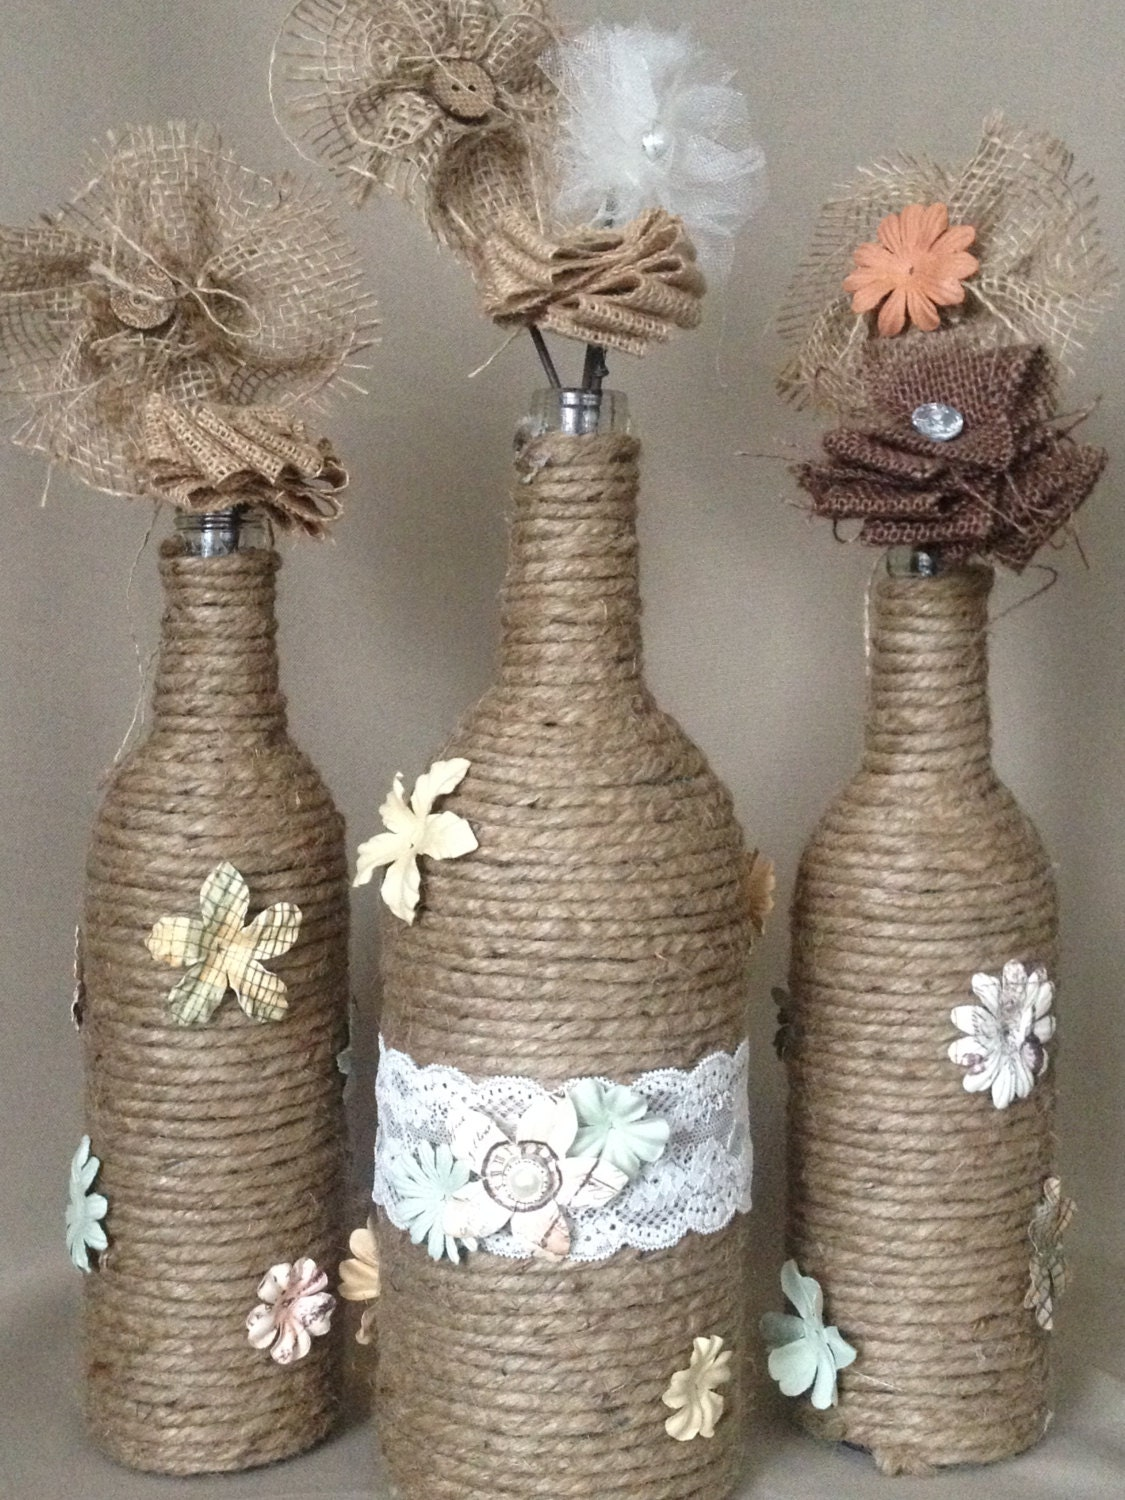 Hanging Twine Wrapped Wine Bottles Lace and Twine Hanging |Twine Covered Wine Bottles